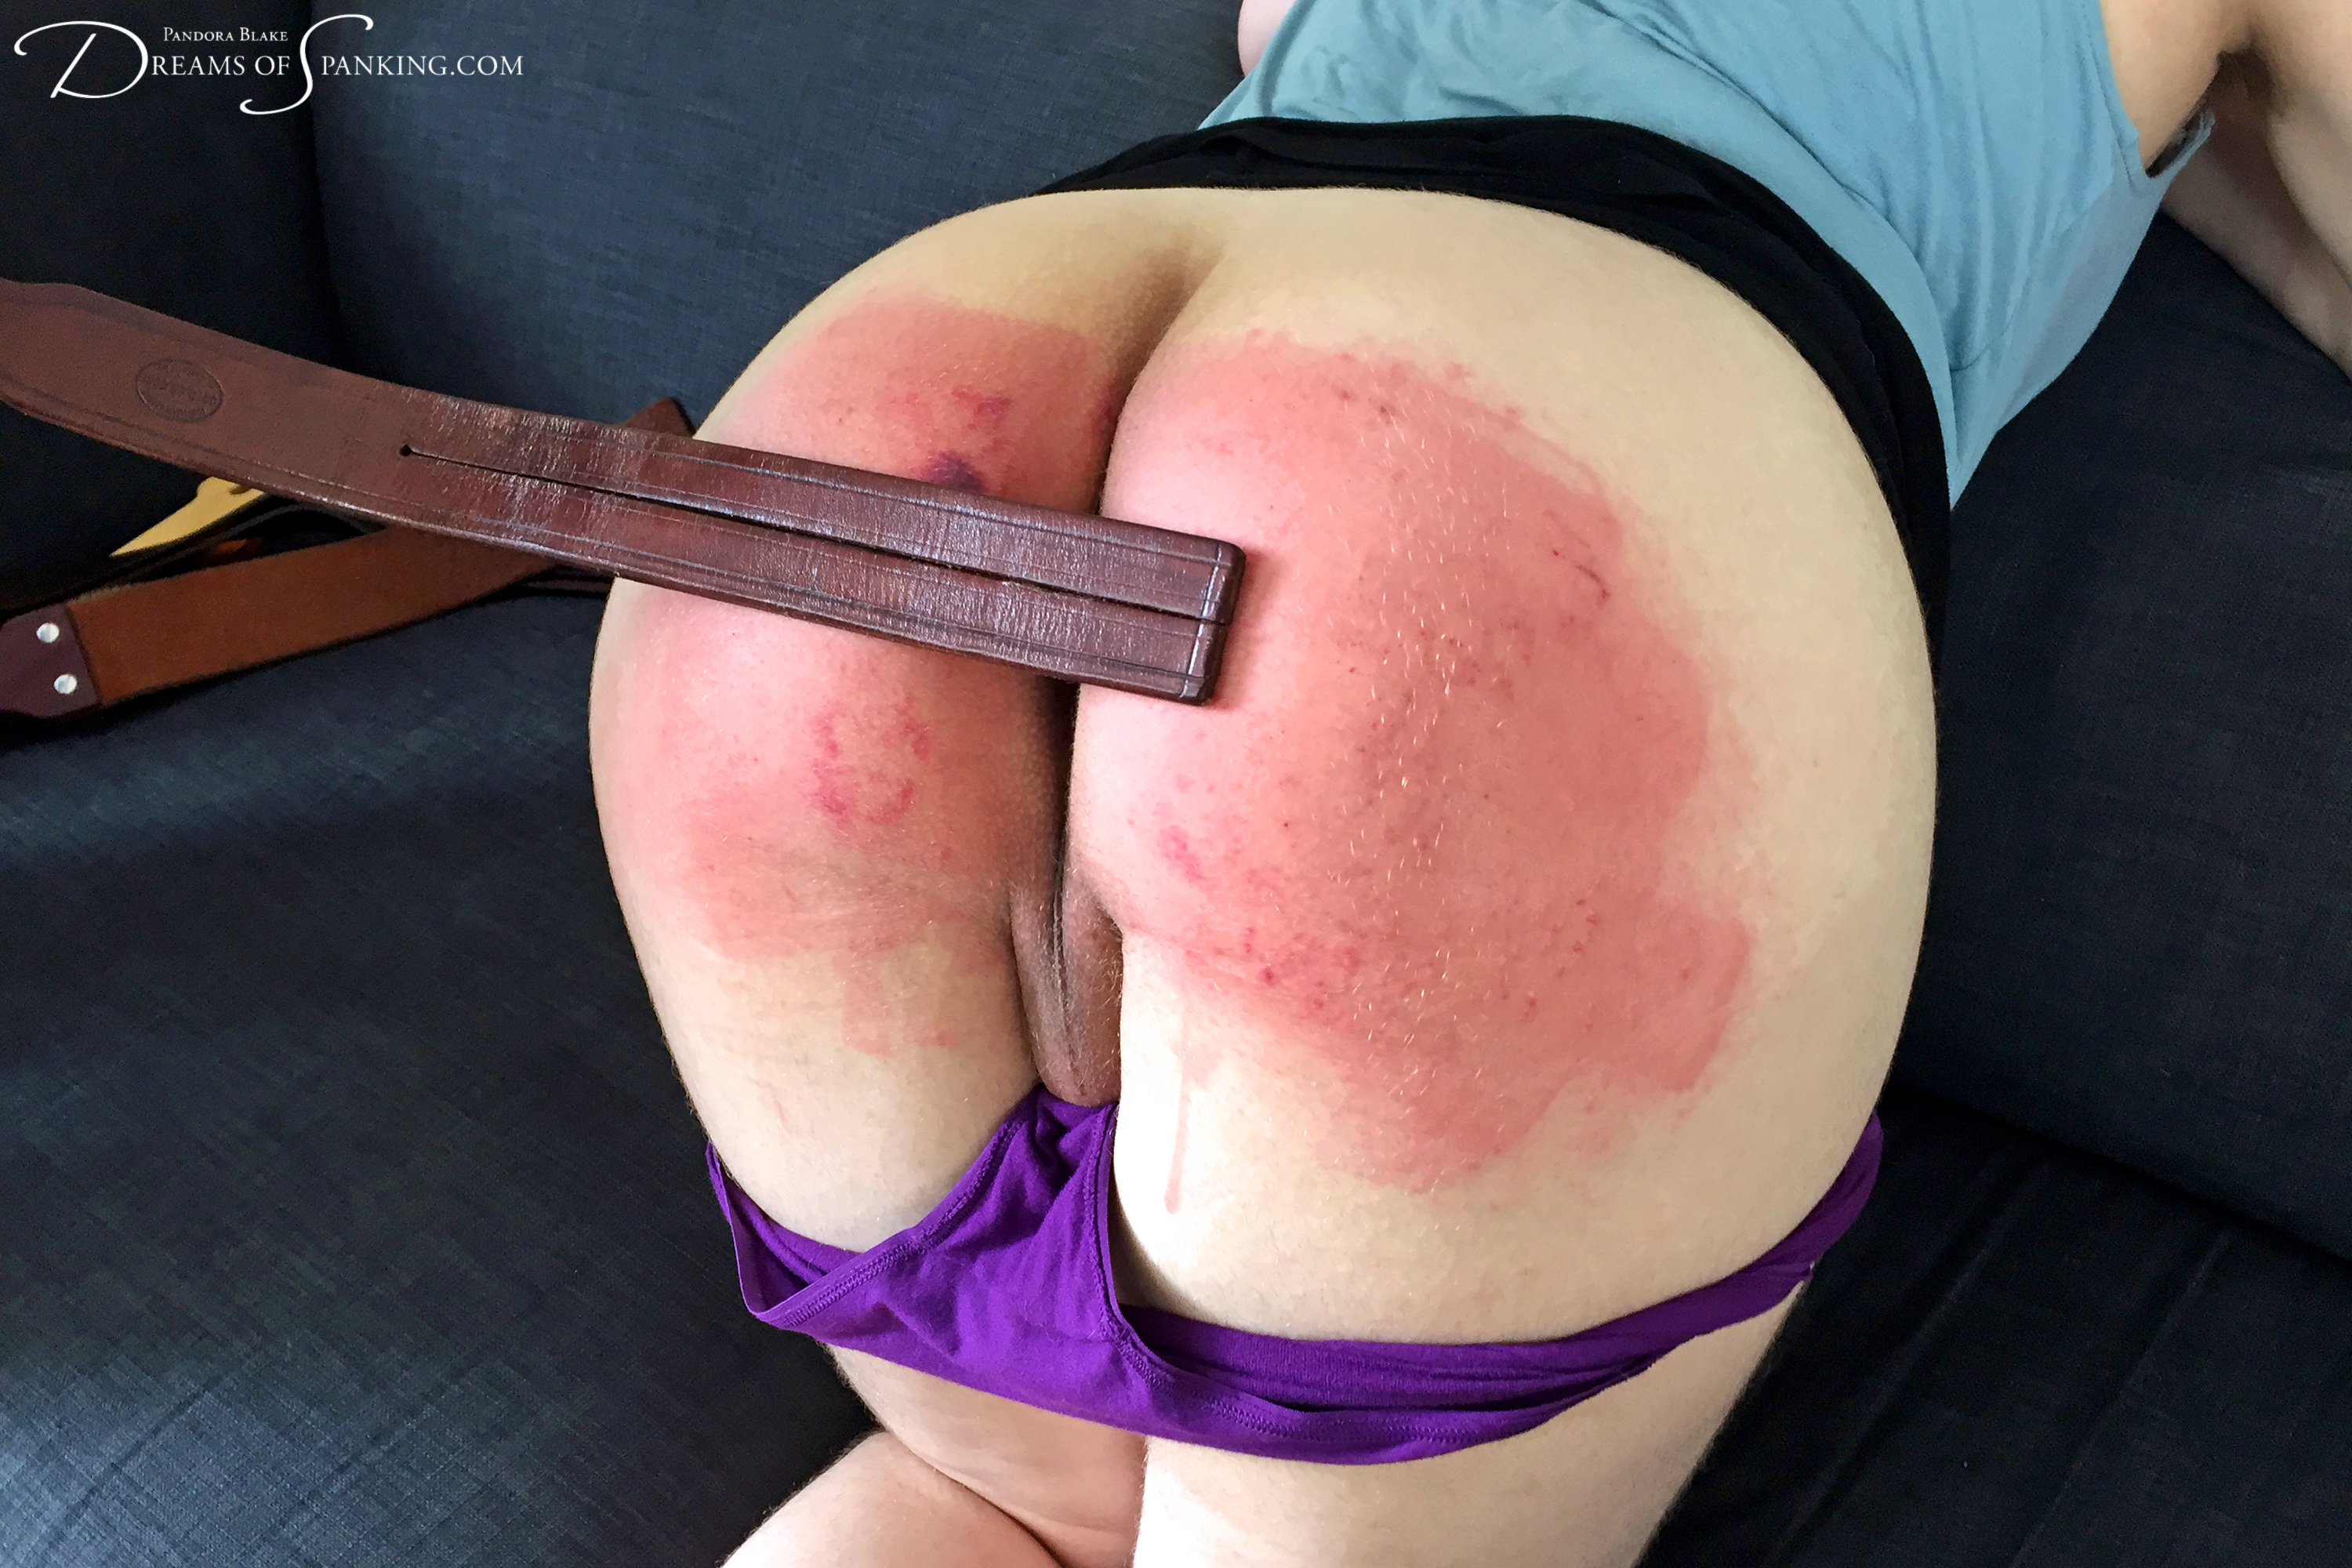 Tai Crimson is kink-shamed and humiliated by her abusive therapist in an edgy fantasy from Dreams of Spanking